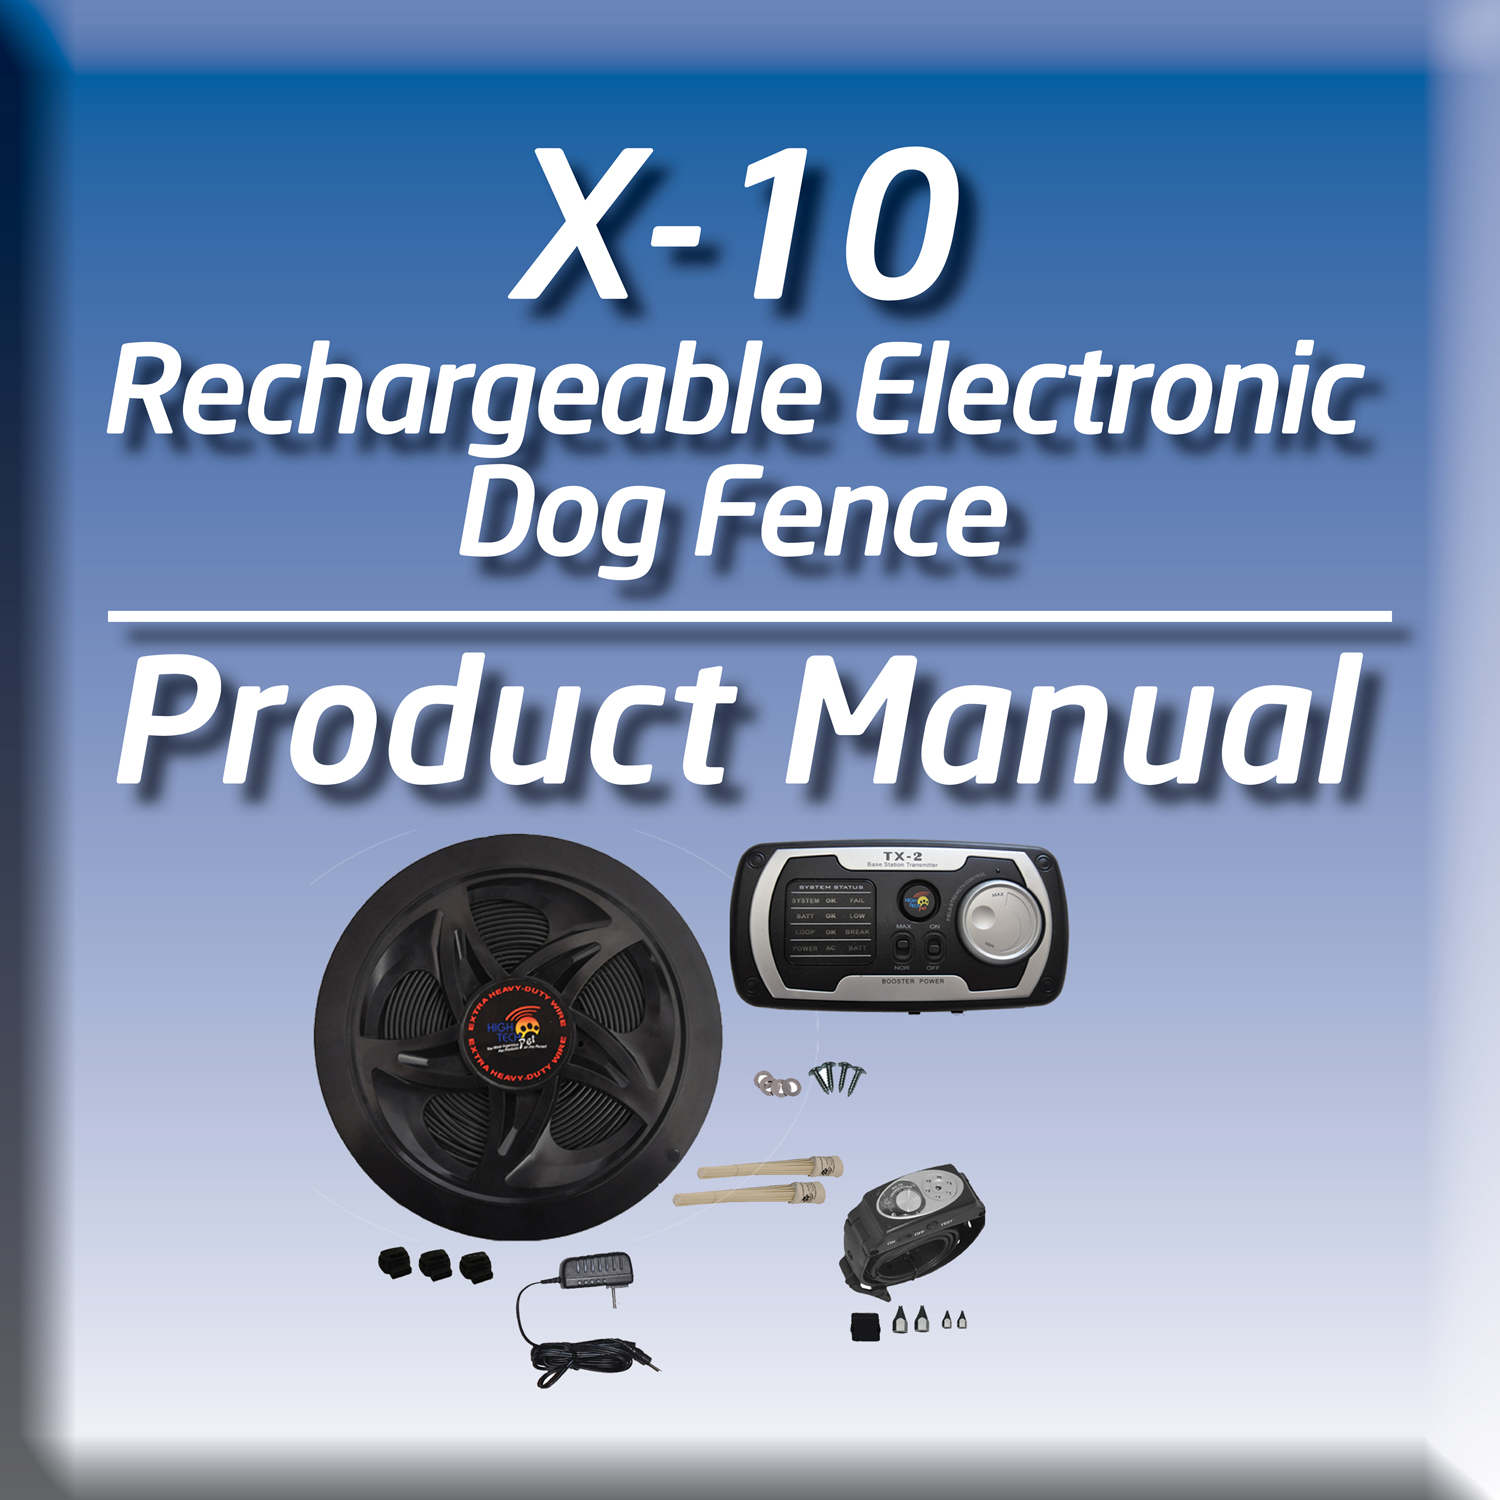 This package includes dog fence wire